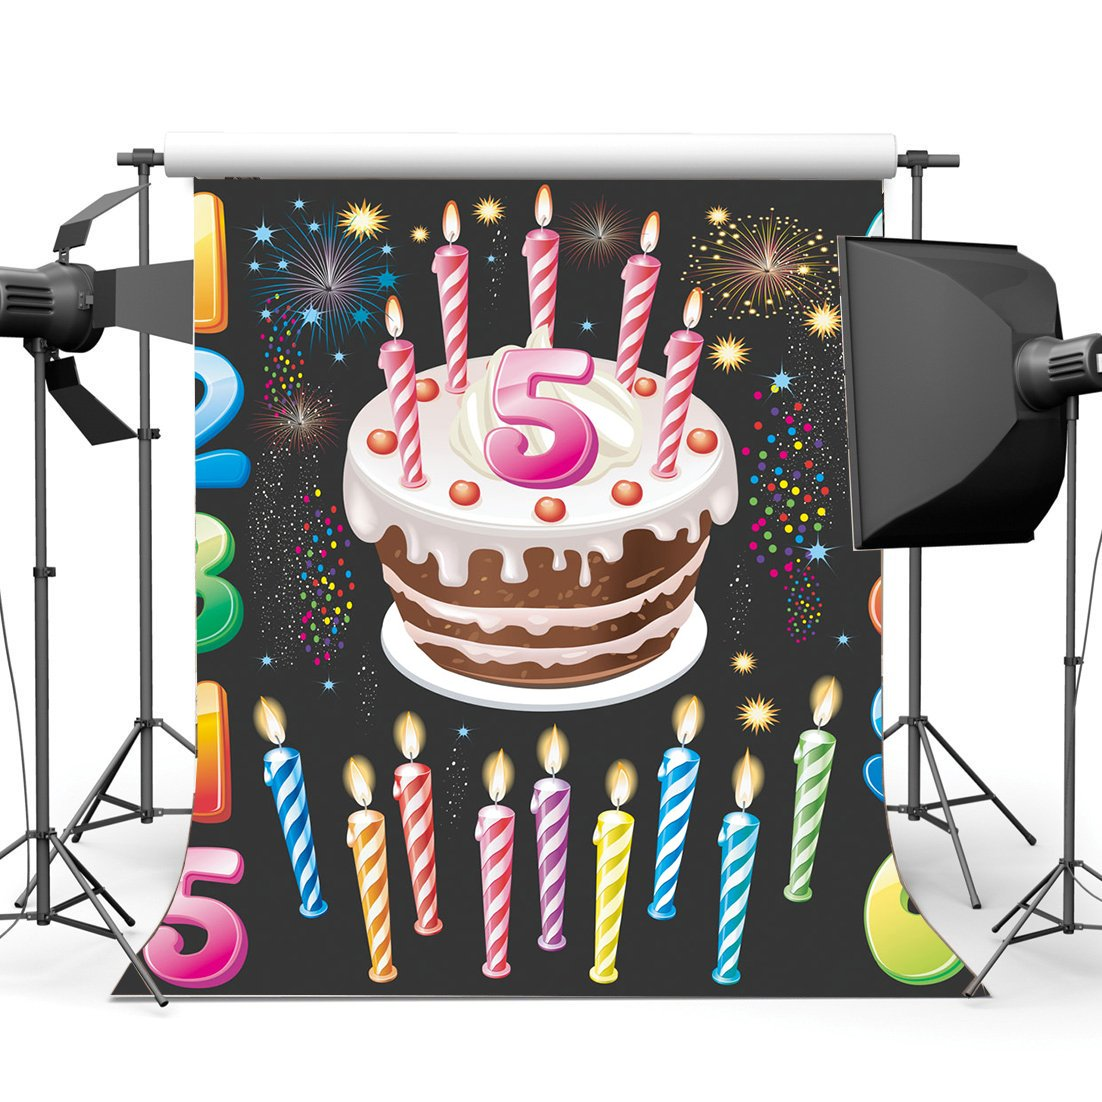 Happy Birthday Backdrop Sweet Baby Cake Smash Alphabet Numbers Candles Bokeh Sequins Wallpaper Photography Background-in Photo Studio Accessories from Consumer Electronics